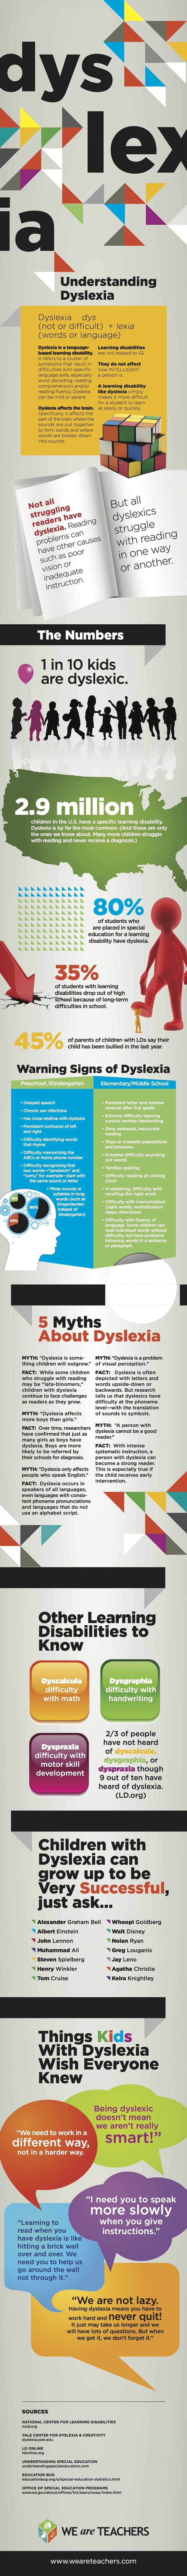 Here's a great infographic for understanding dyslexia.